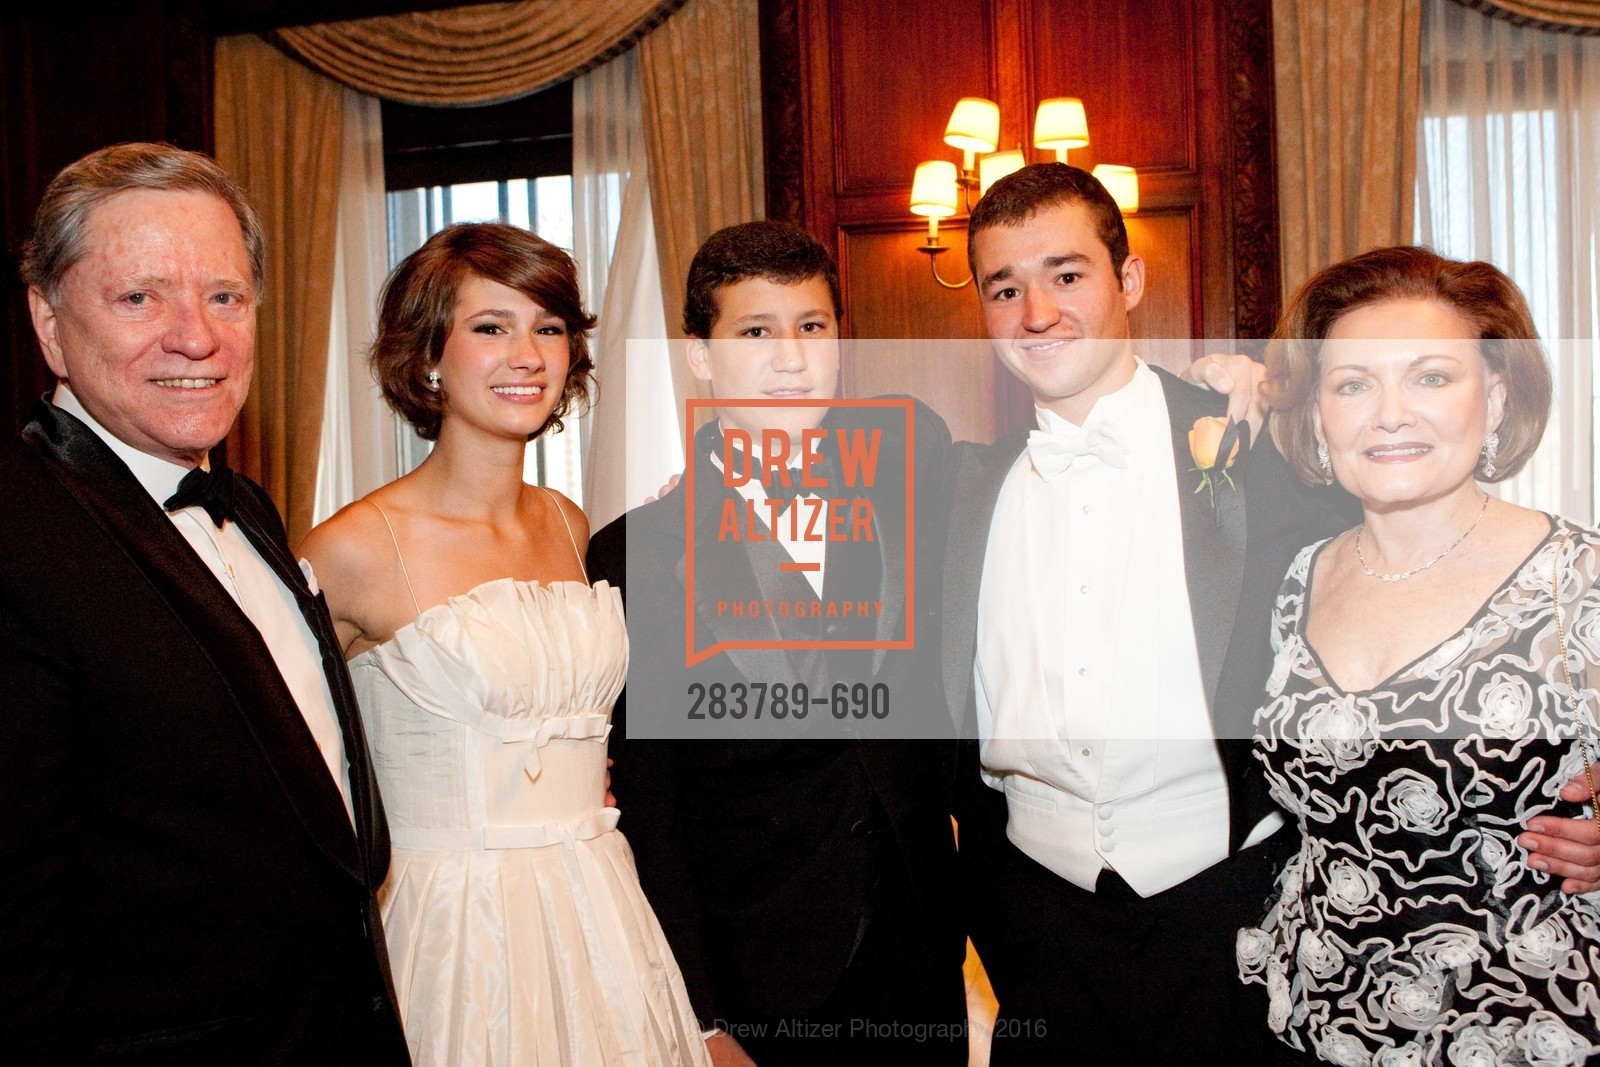 George McLaughlin, Grace Pritchett Milligan, James Milligan, Matt Milligan, Olive Ann McLaughlin, 2009 Debutante Ball, Unknown, July 4th, 2008,Drew Altizer, Drew Altizer Photography, full-service agency, private events, San Francisco photographer, photographer california